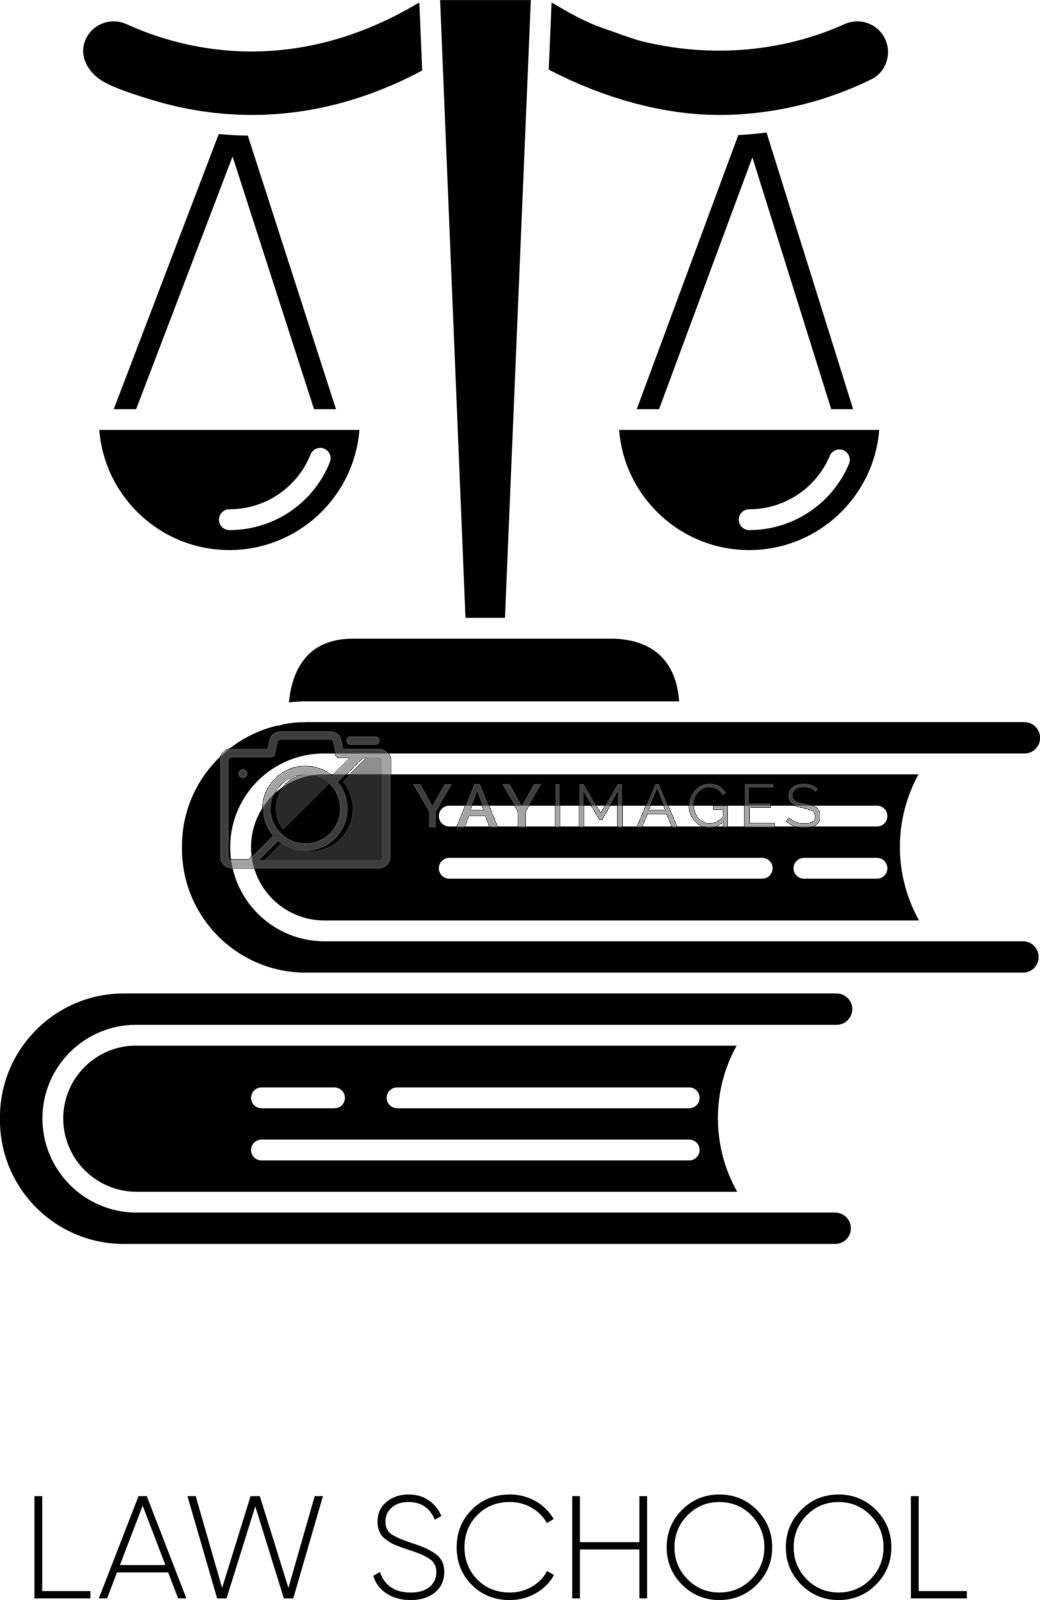 Law school black glyph icon. Professional jurisprudence education, judicial system. Legal court trial, justice silhouette symbol on white space. Scales on books stack vector isolated illustration